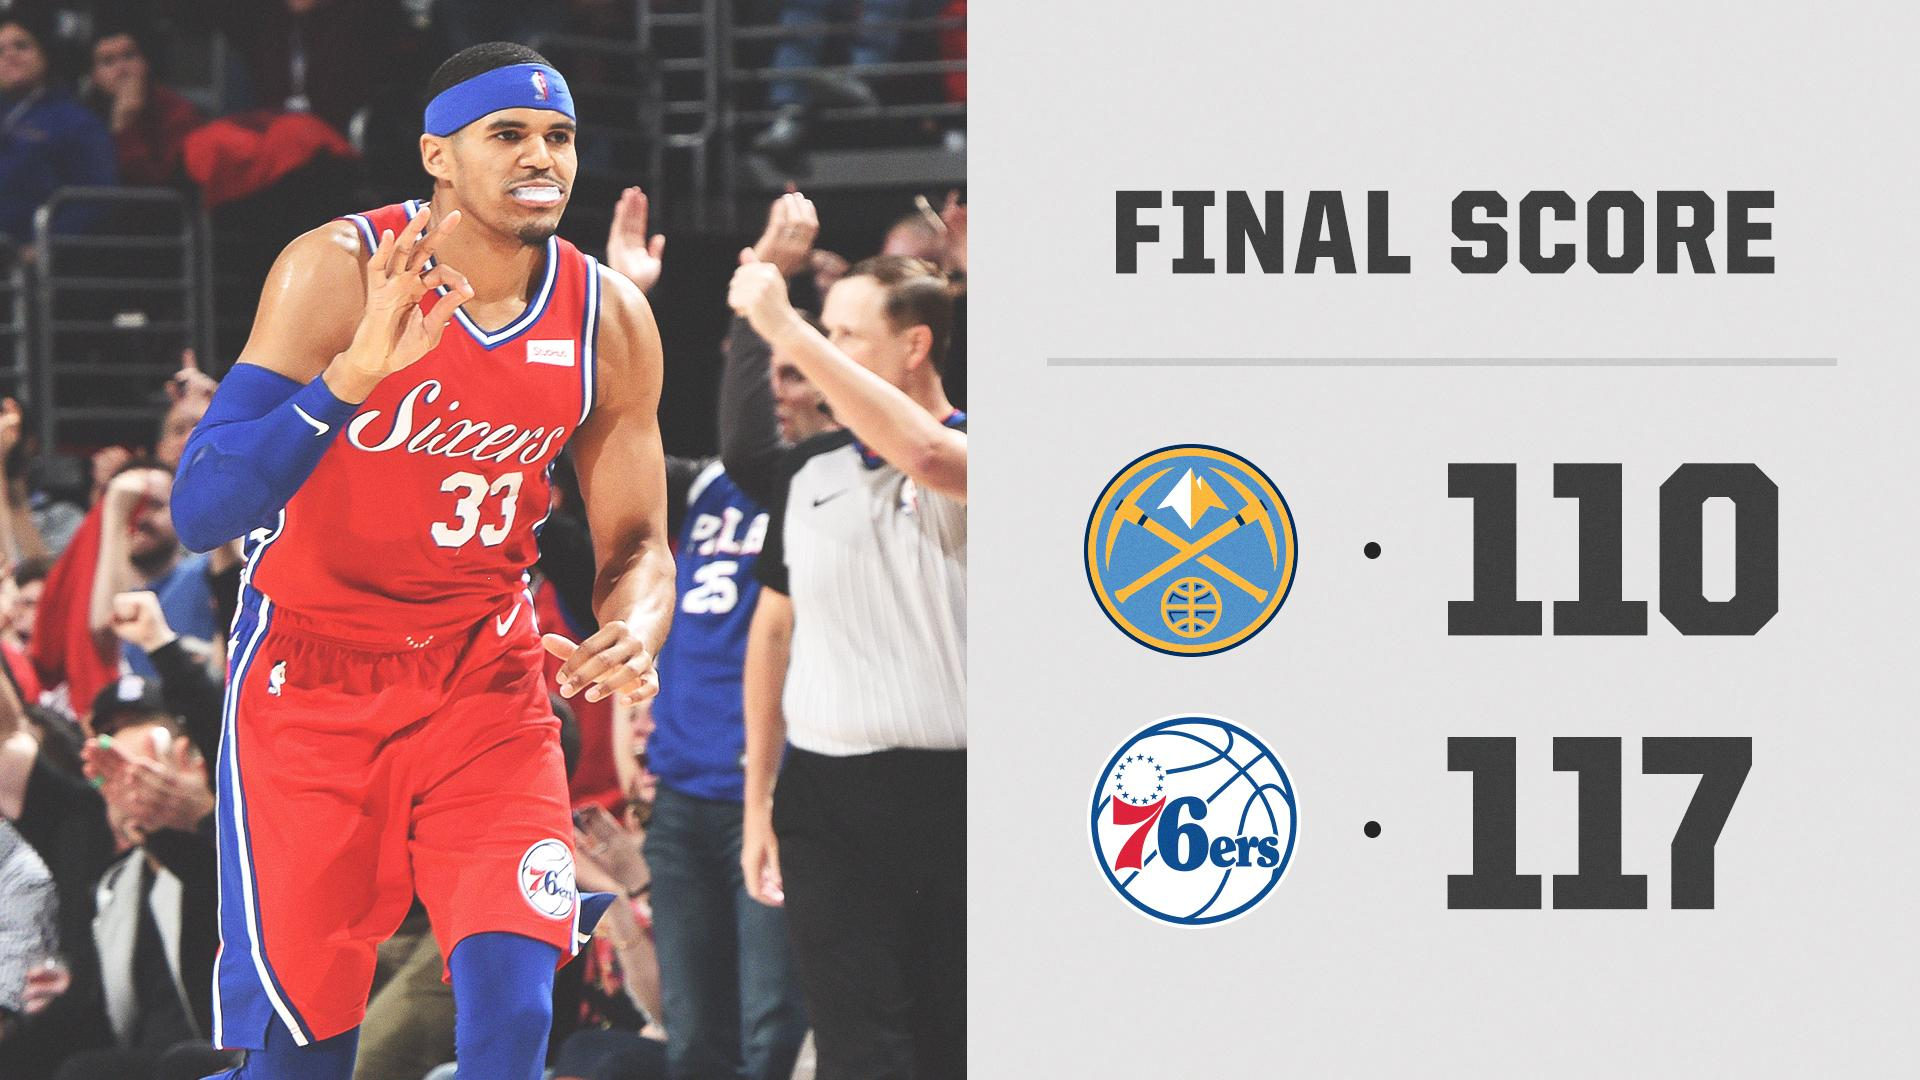 The new-look 76ers are off to a good start. https://t.co/vDpEy4JzEt